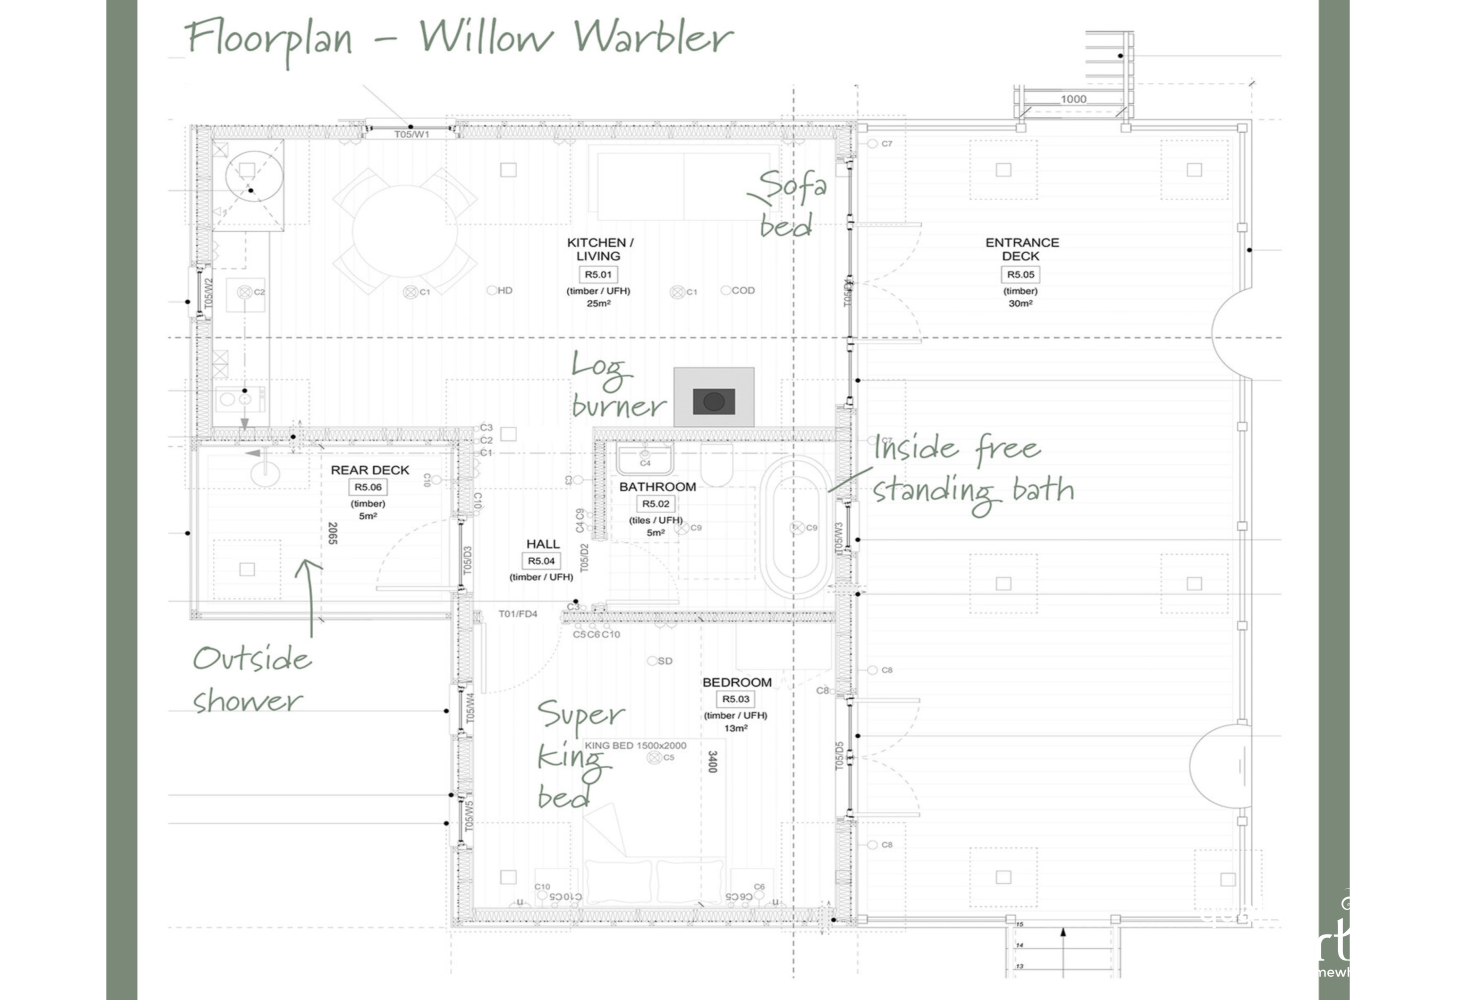 Floorplan Willow Warbler